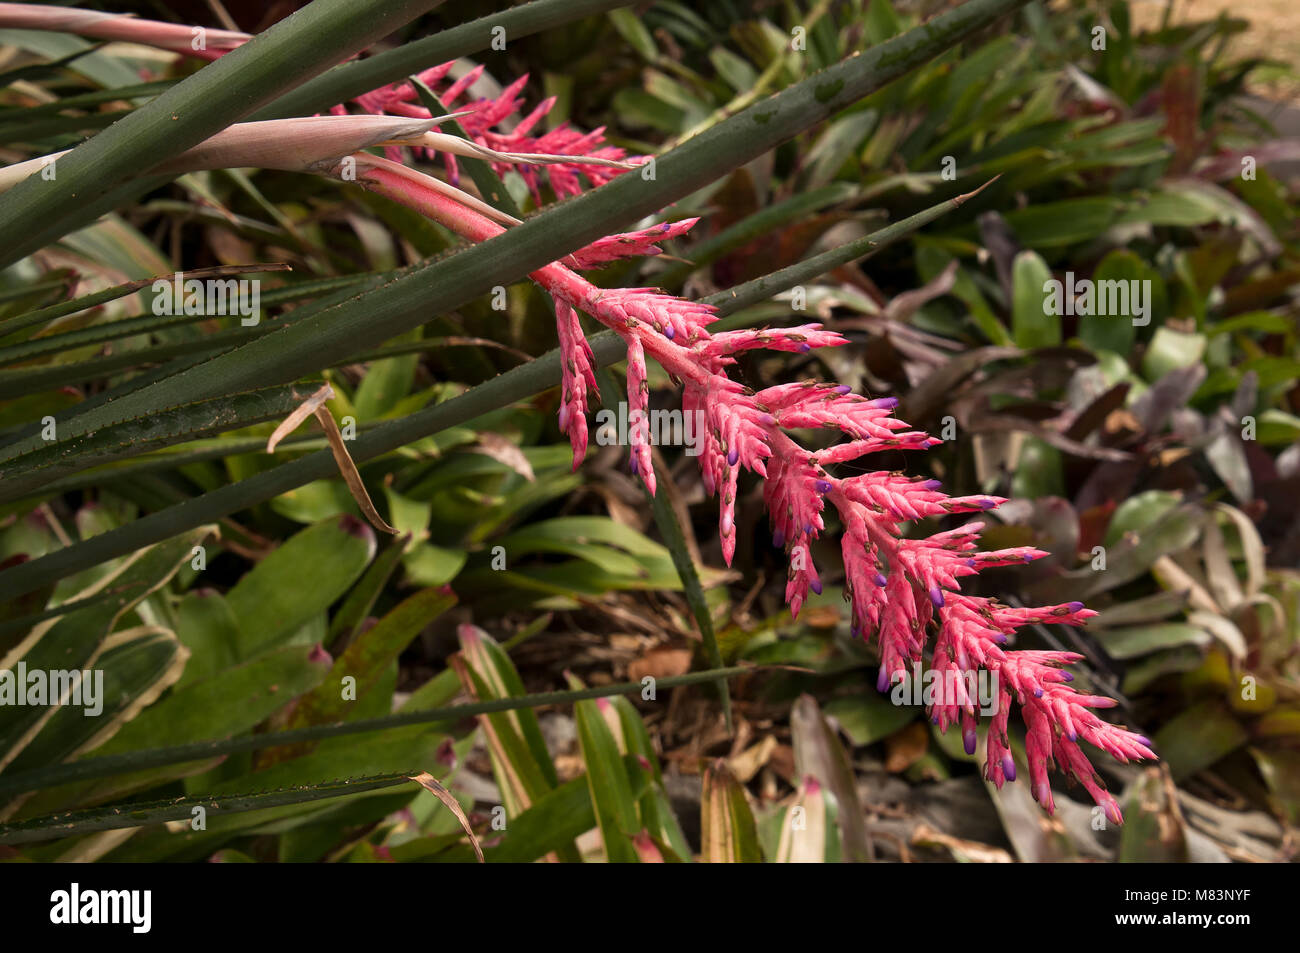 Sydney australia hanging spike of pink bromeliad flower stock photo sydney australia hanging spike of pink bromeliad flower mightylinksfo Image collections